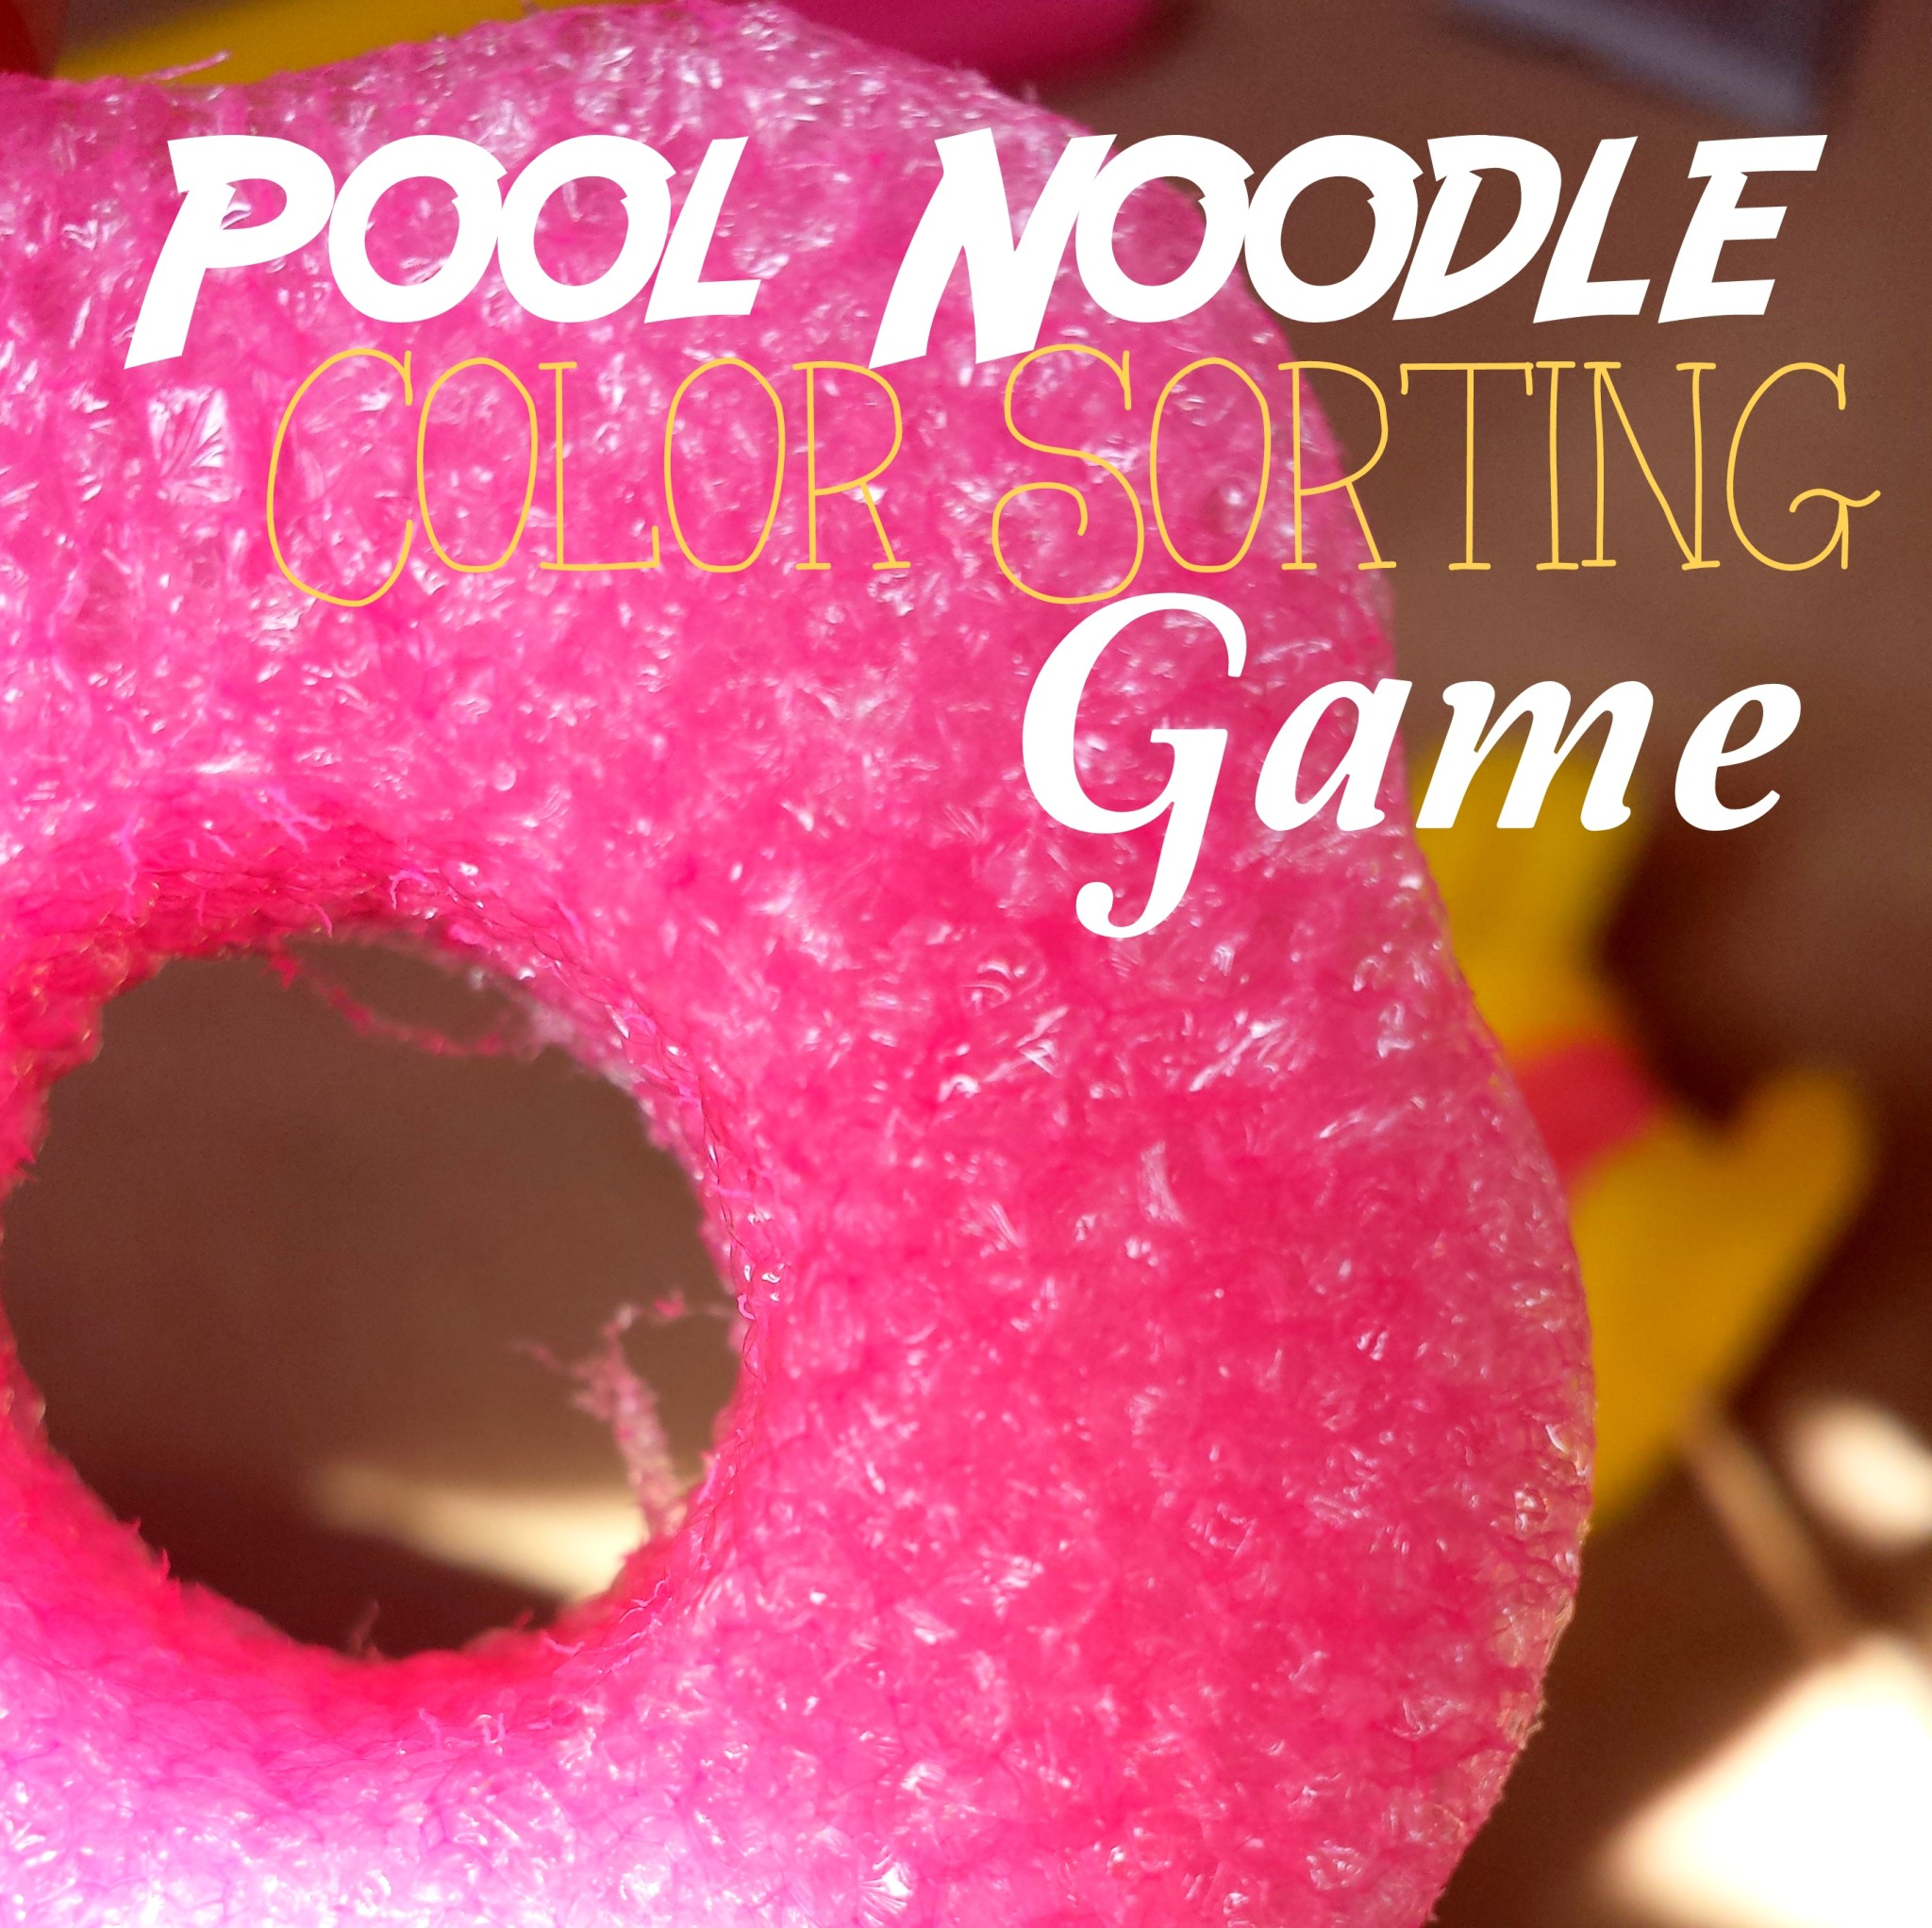 Pool Noodle Color Sorting Game